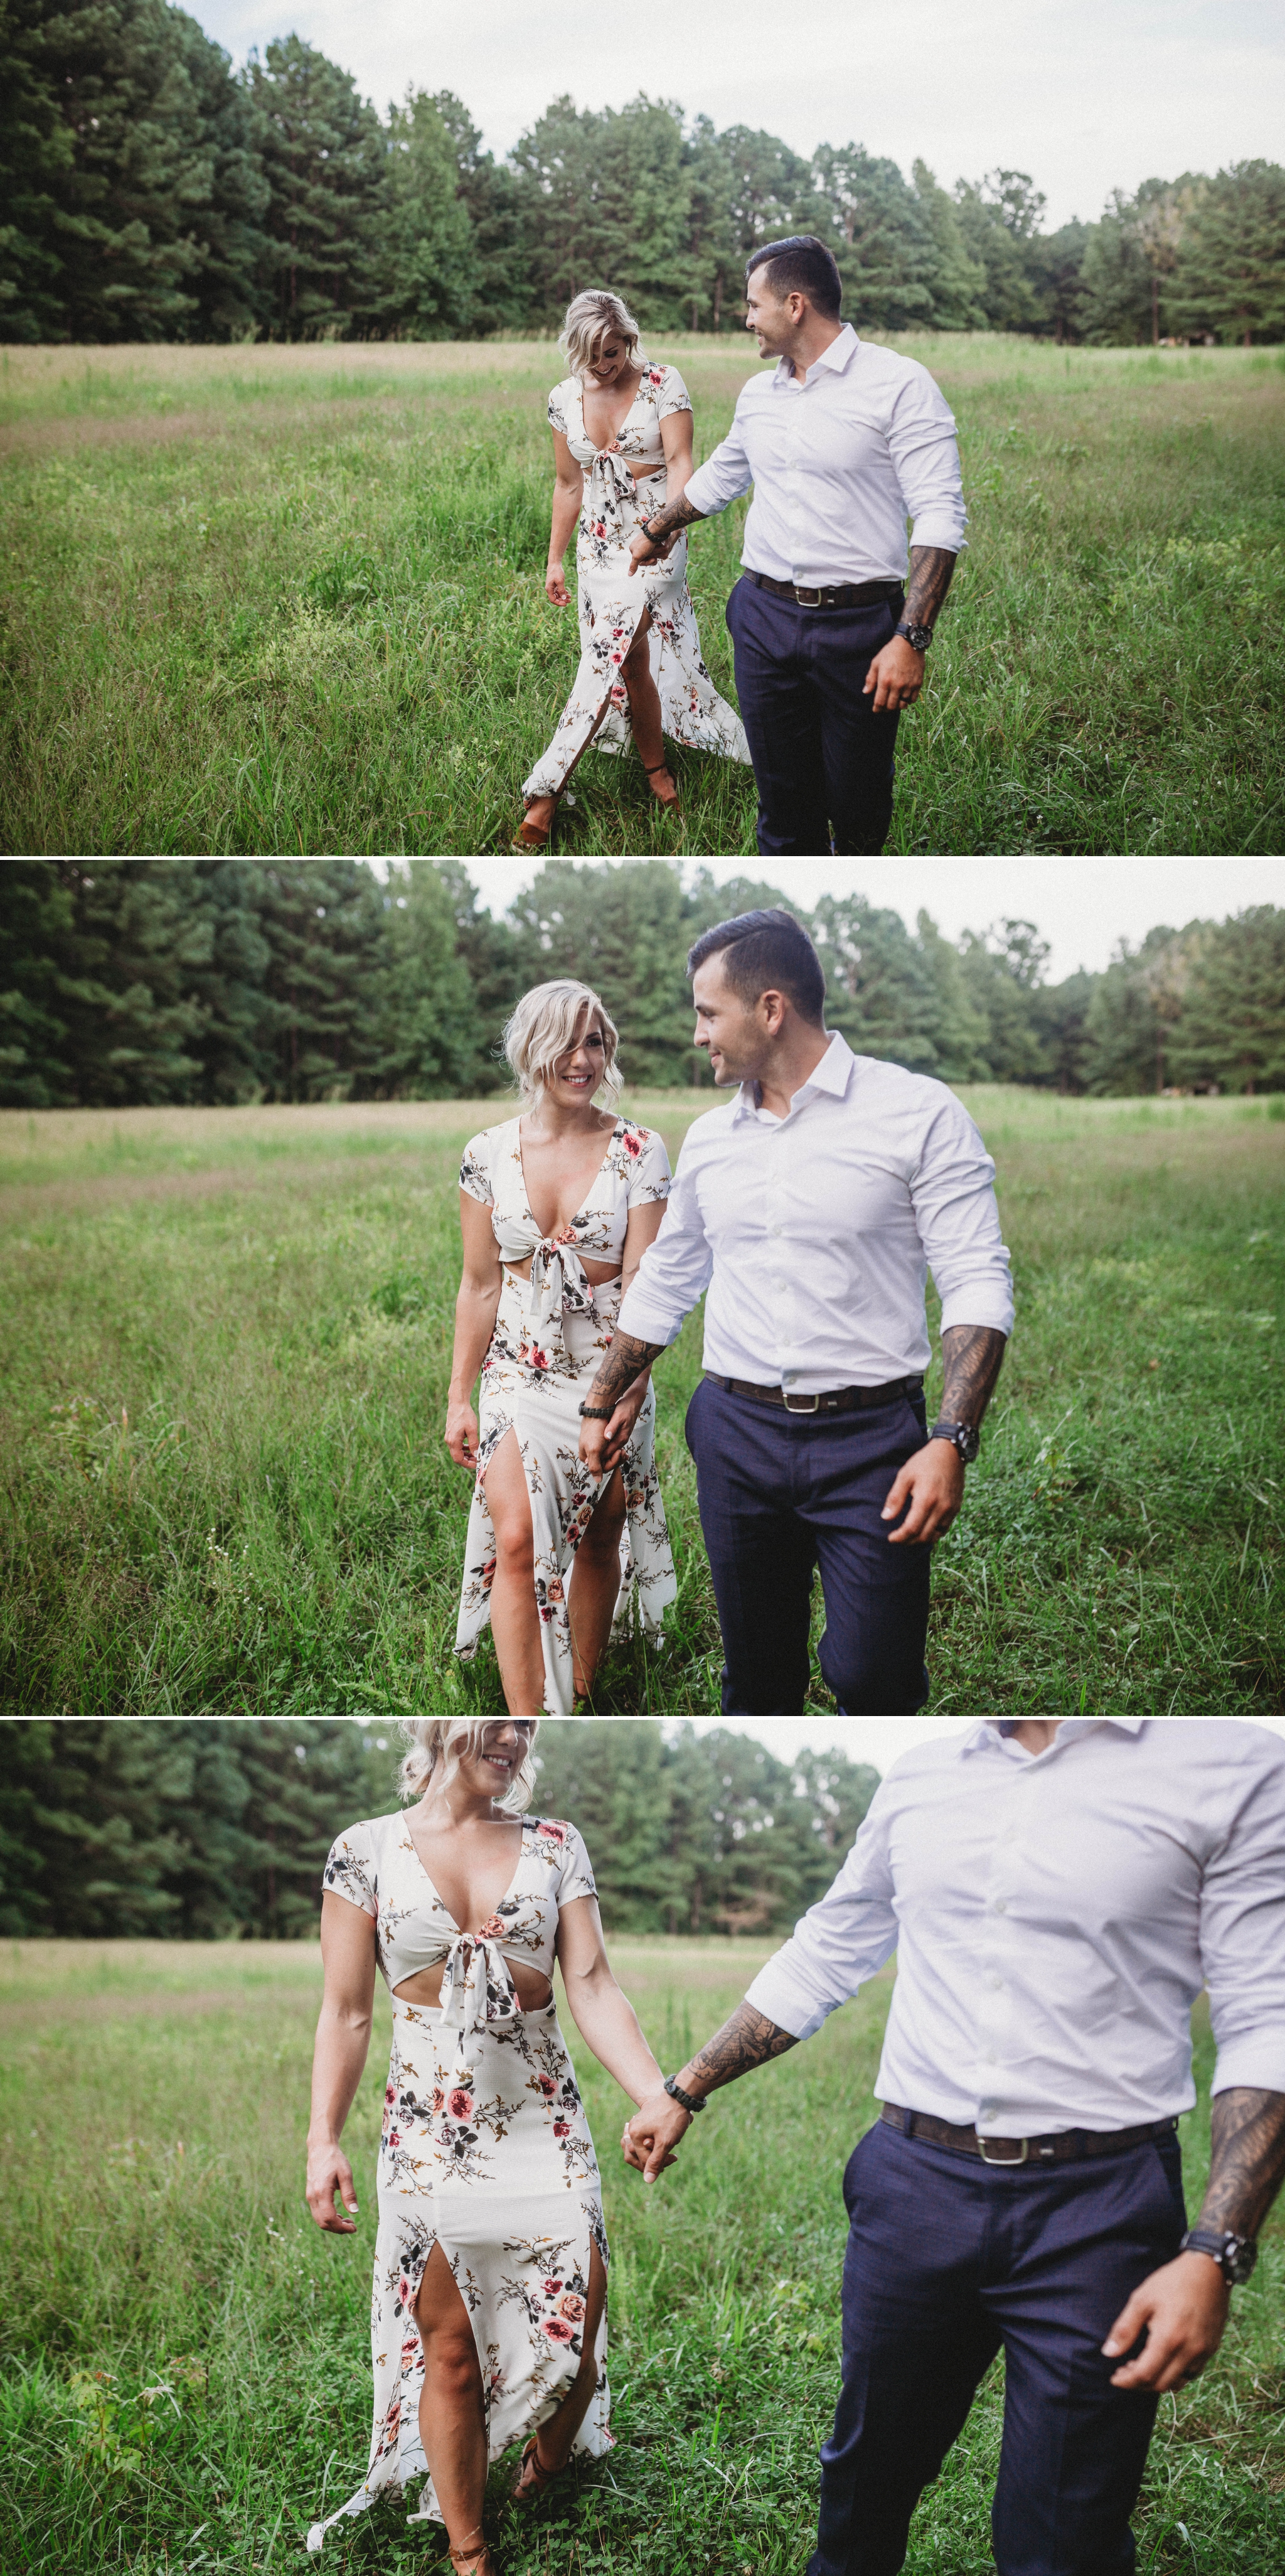 Cassie + Jesse - Engagement Photography Session in a field - Fayetteville North Carolina Wedding Photographer 8.jpg